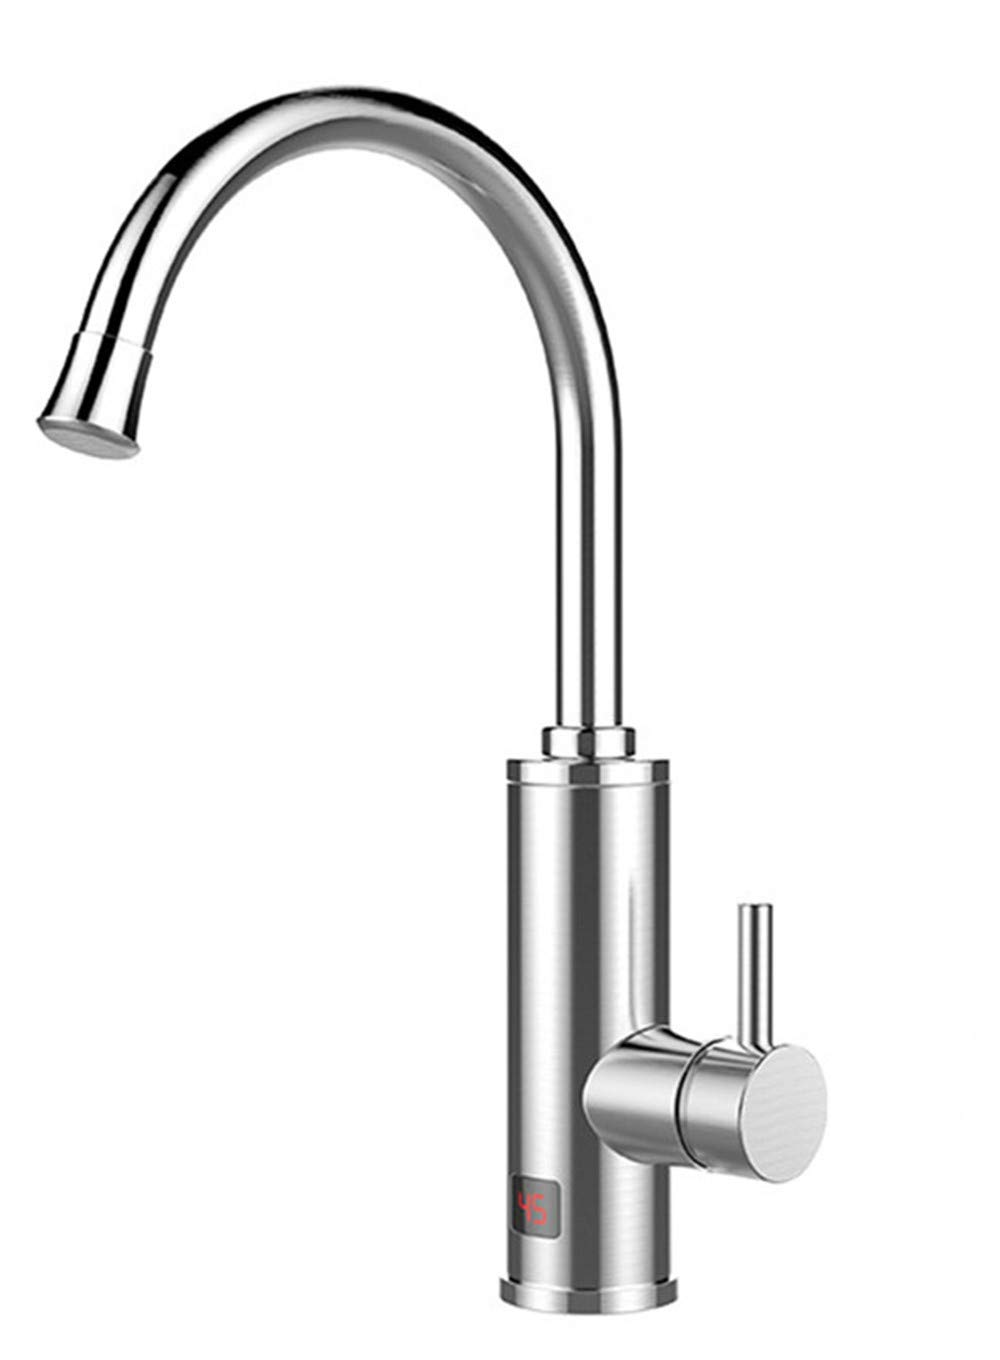 Electric Heating of Stainless Steel Electric faucet bath, kitchen stainless steel faucet,Electric heating of stainless steel